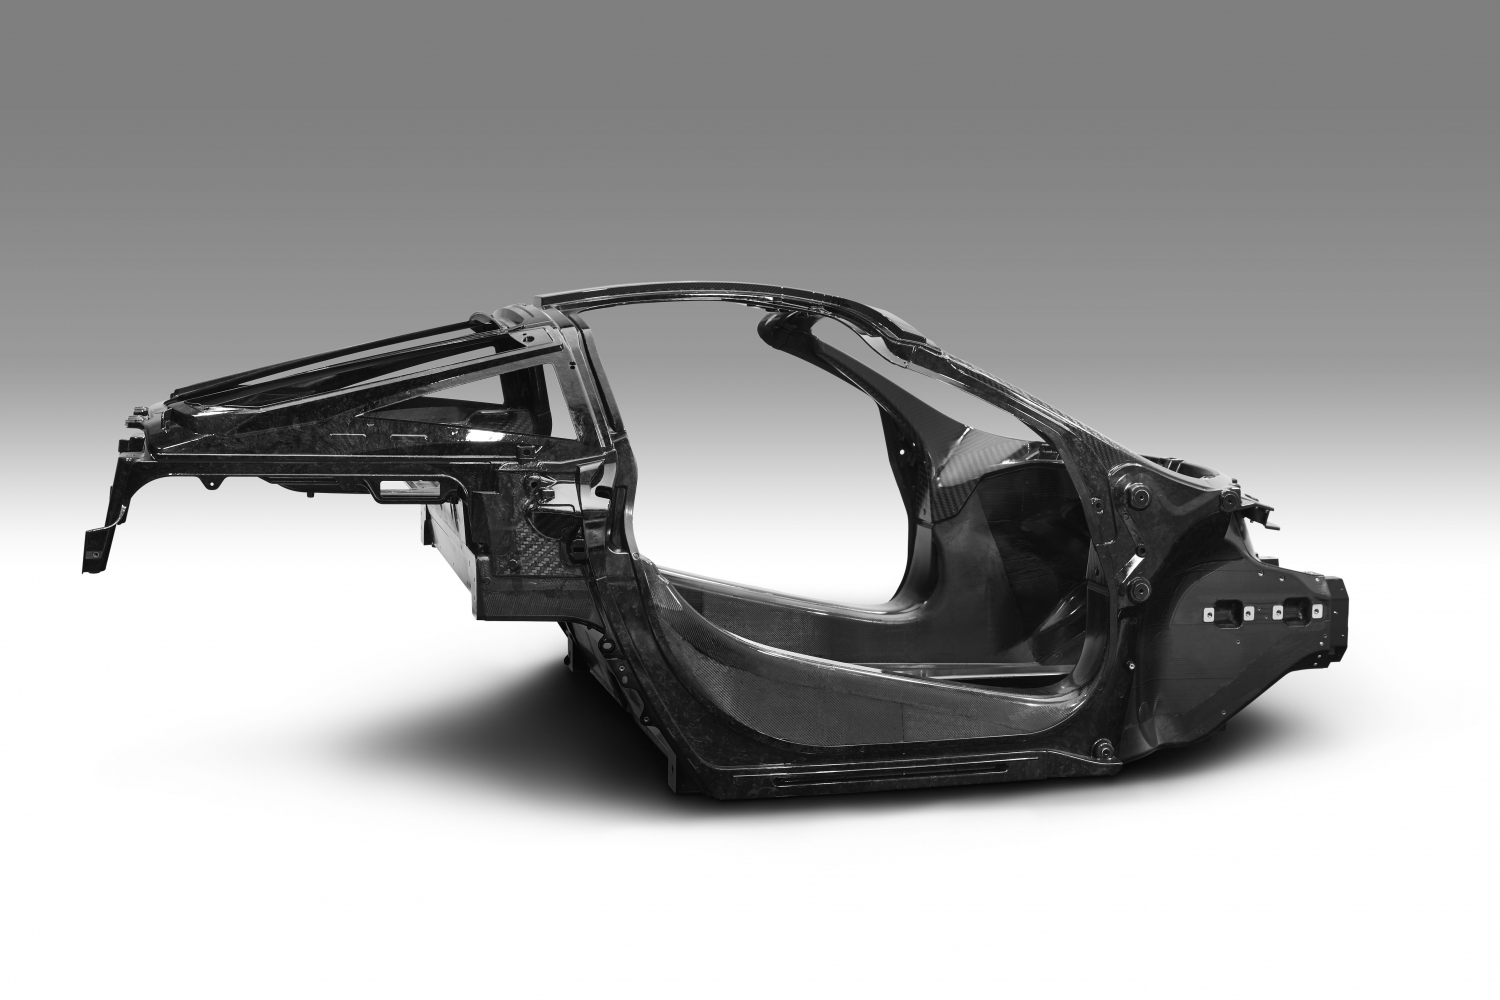 small-7377040117_mclaren-automotive-announces-second-generation-super-series_monocage-ii-image_final